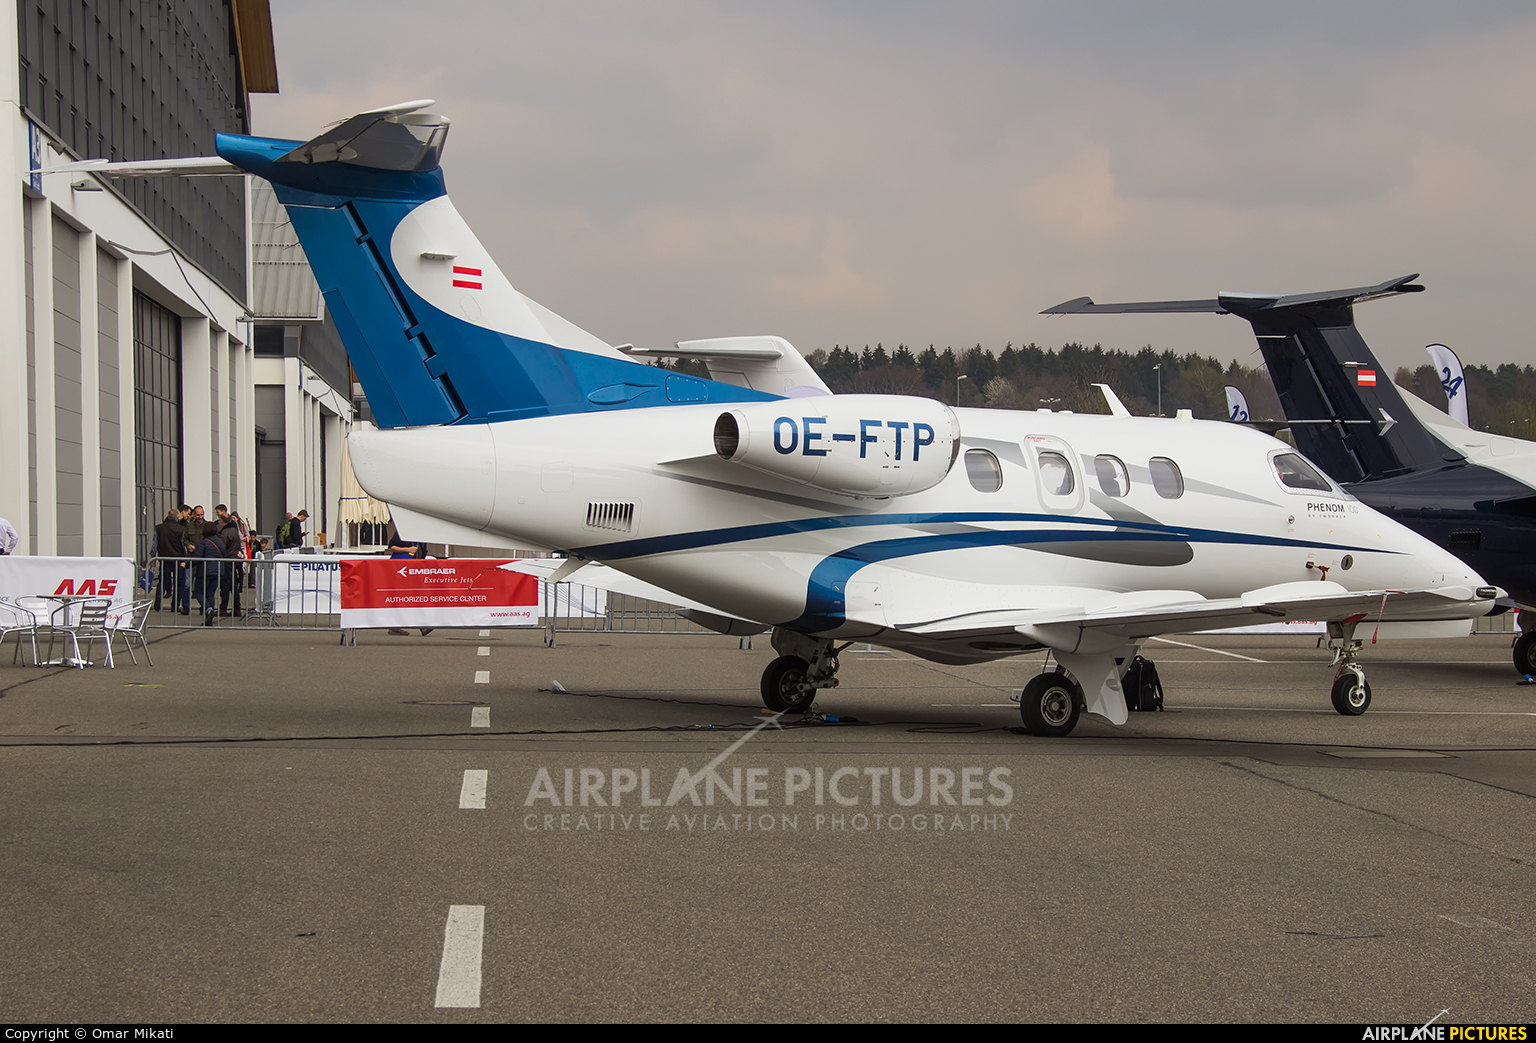 Private OE-FTP aircraft at Friedrichshafen